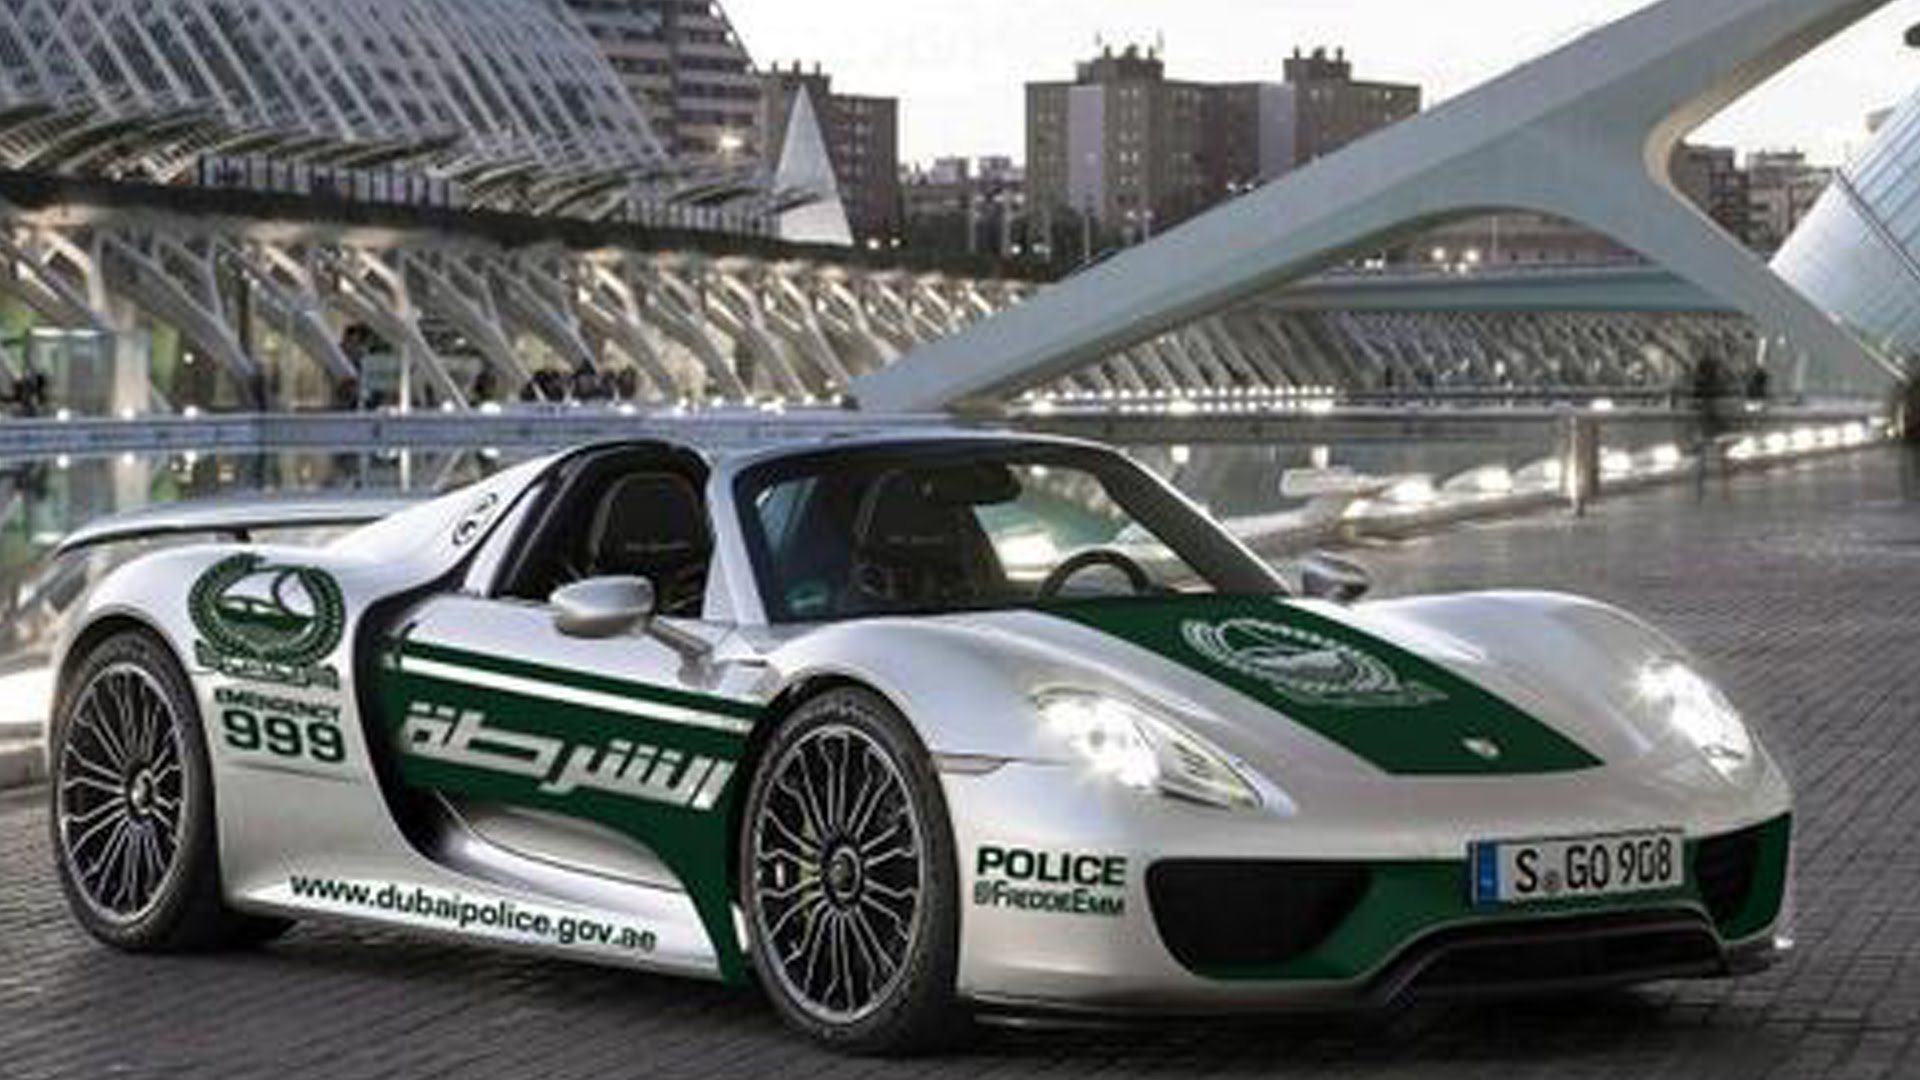 sell your car in 30min dubai police swell. Black Bedroom Furniture Sets. Home Design Ideas